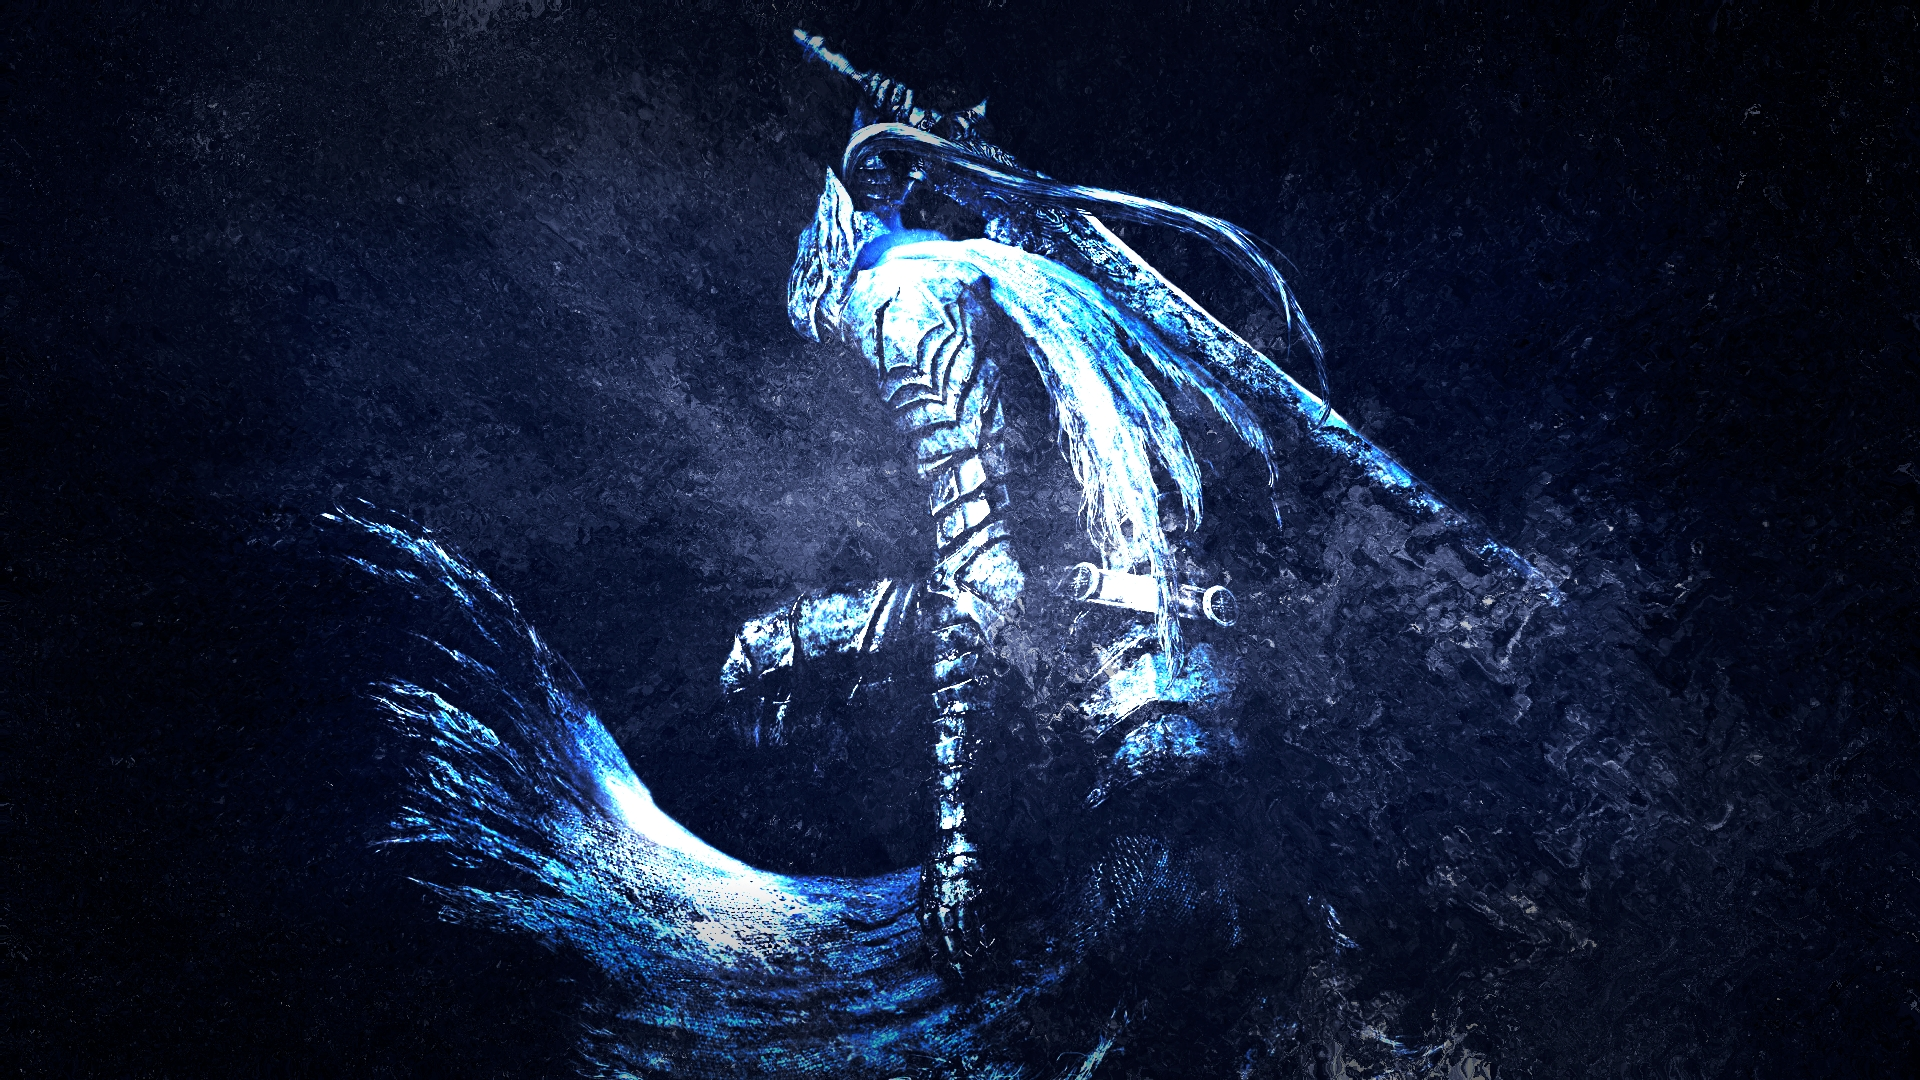 artorias of the abyss wallpapers - wallpaper cave